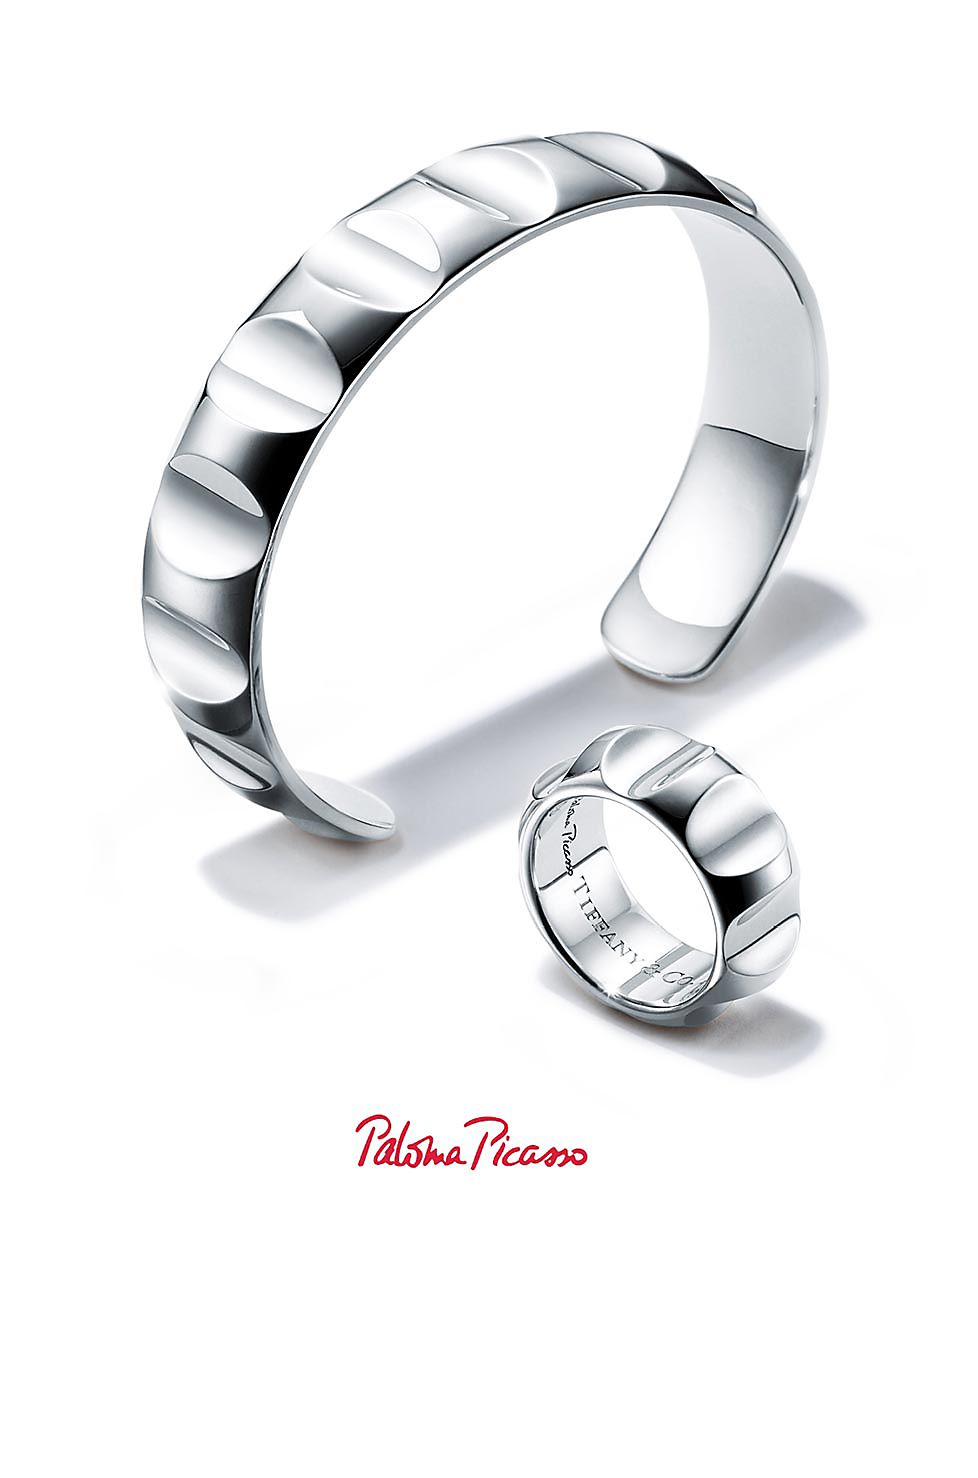 tiffany wedding rings for men. tiffany picasso collection wedding rings for men